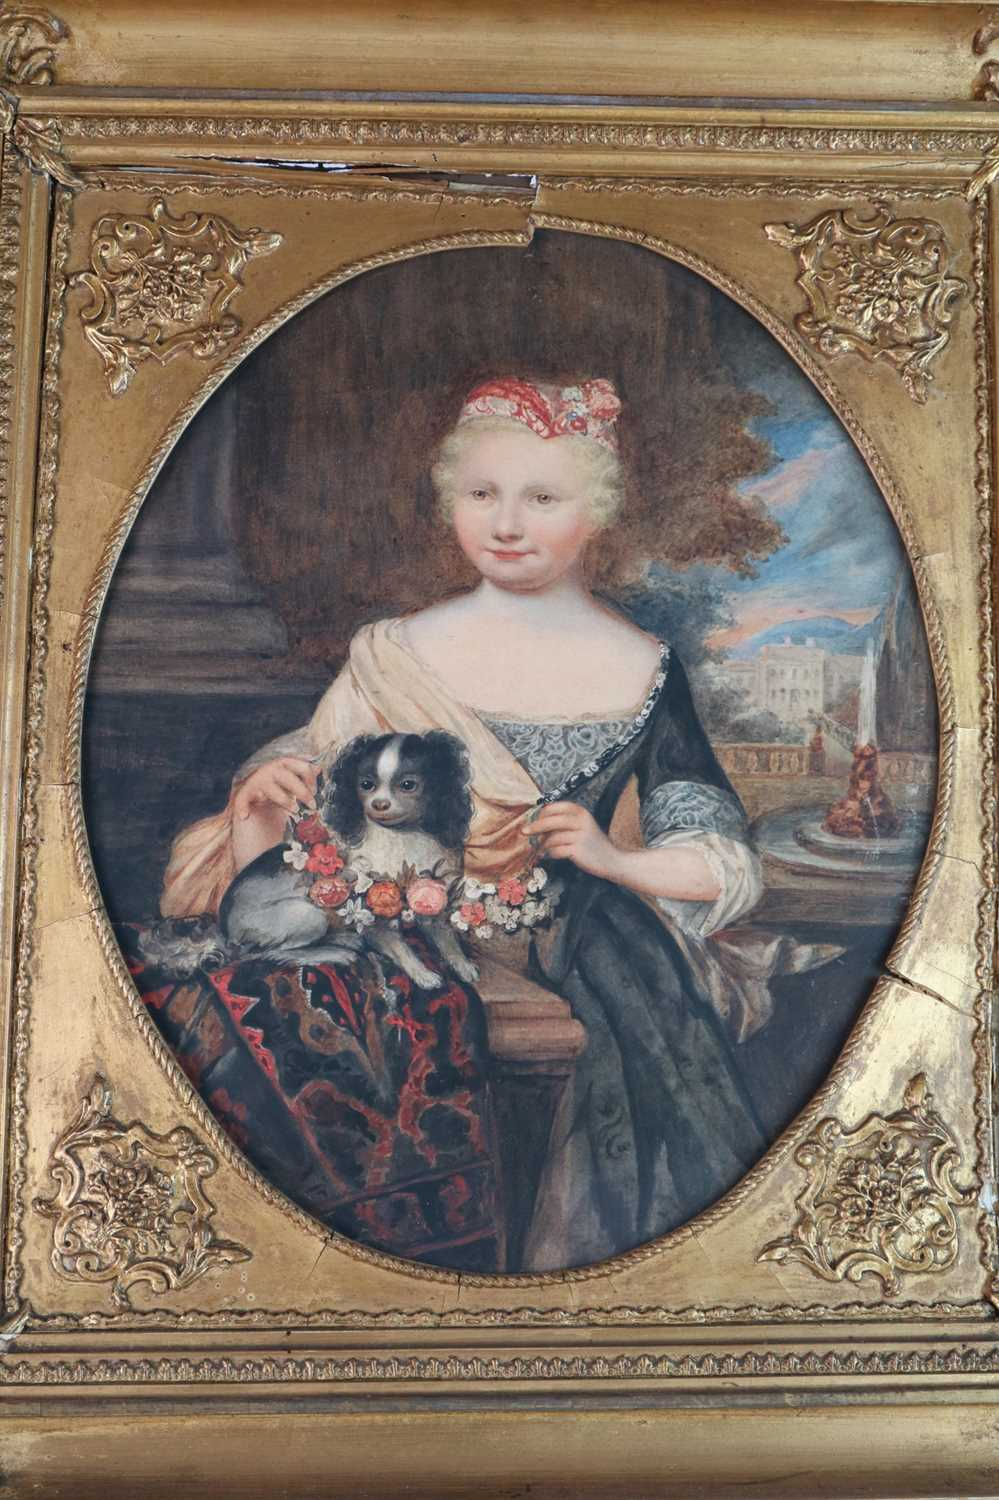 Circle of Caspar Netscher, Portrait of a Girl with a King Charles Spaniel - Image 4 of 4